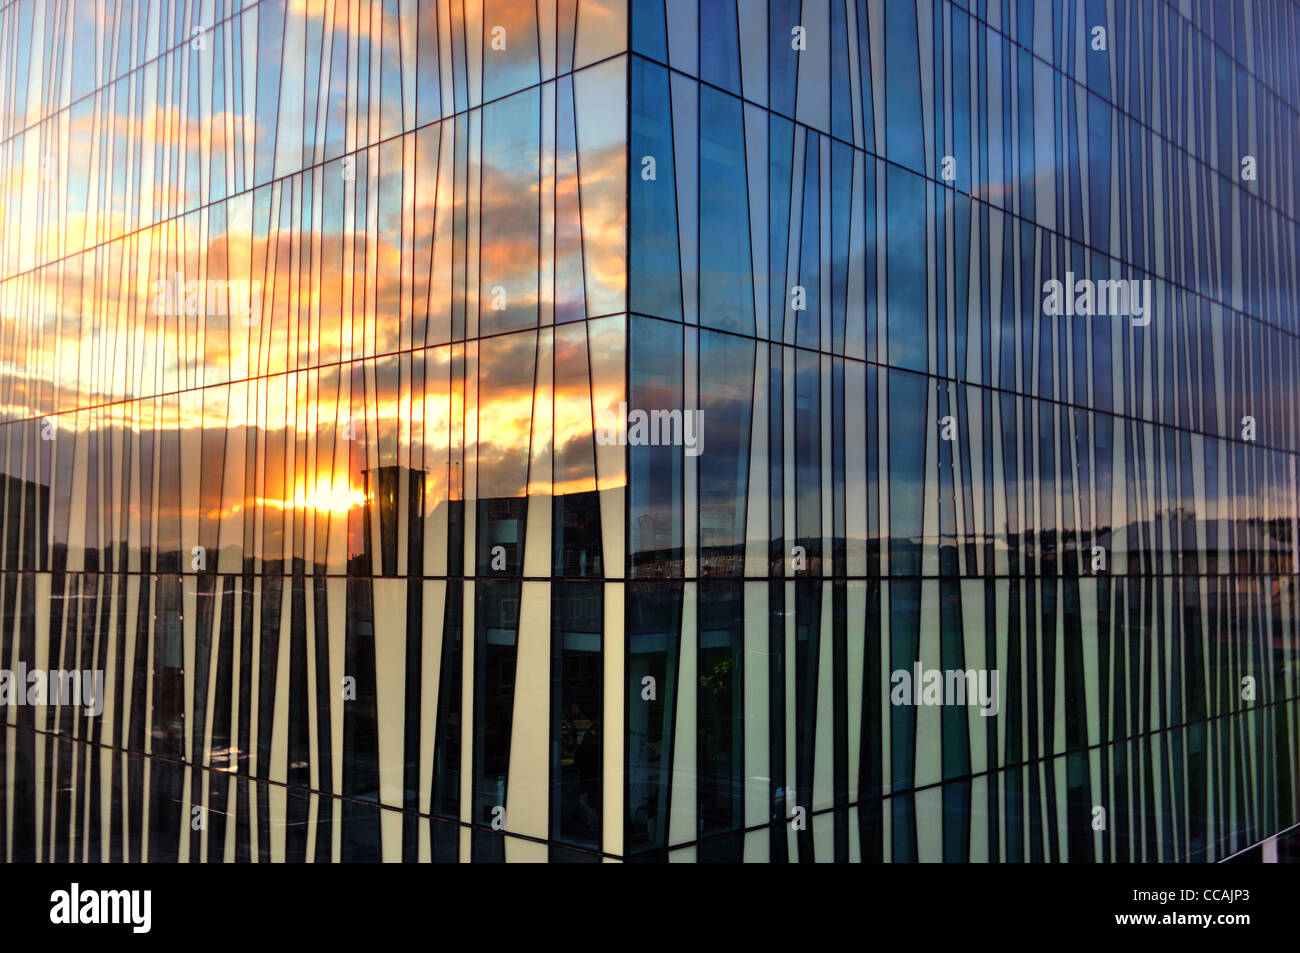 The New Library, University of Aberdeen - Stock Image